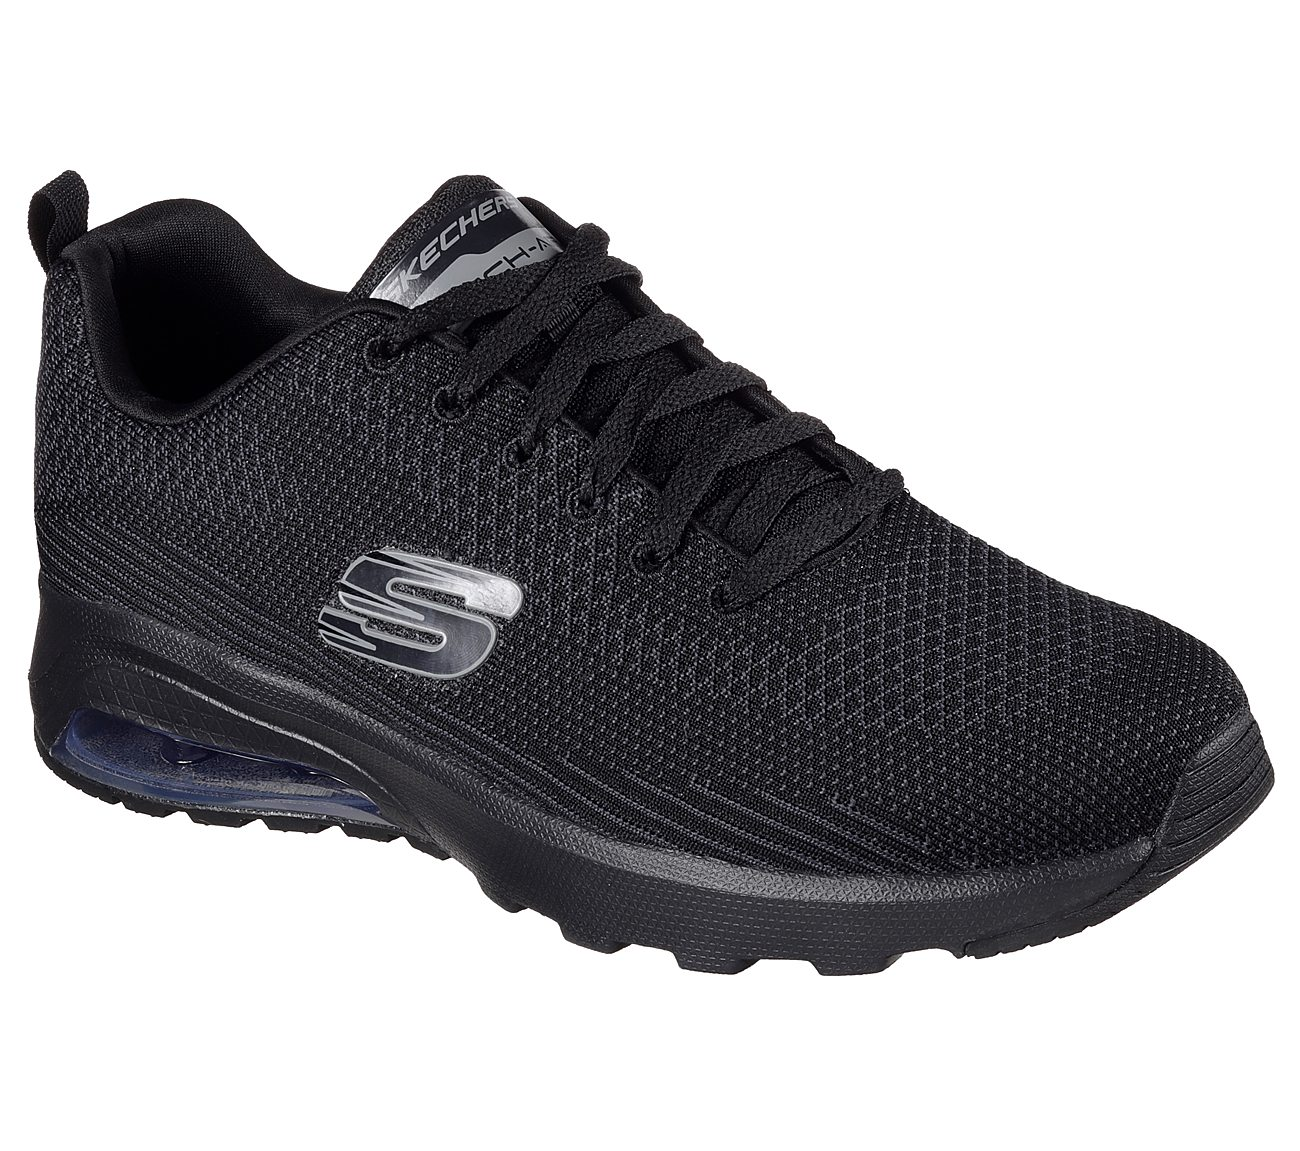 Buy SKECHERS Skech-Air Extreme SKECHERS